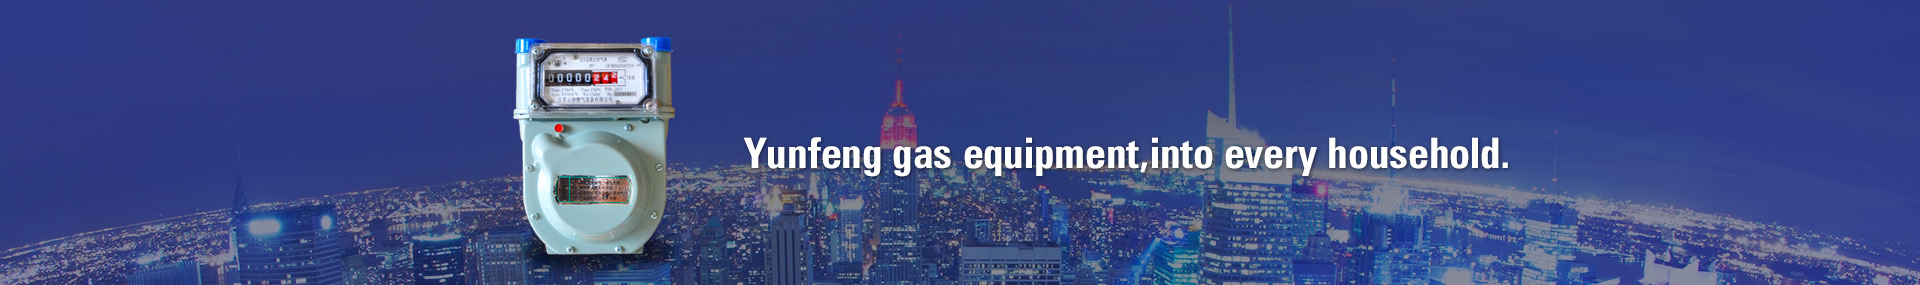 Jiangsu Yunfeng gas equipment Co.,Ltd.